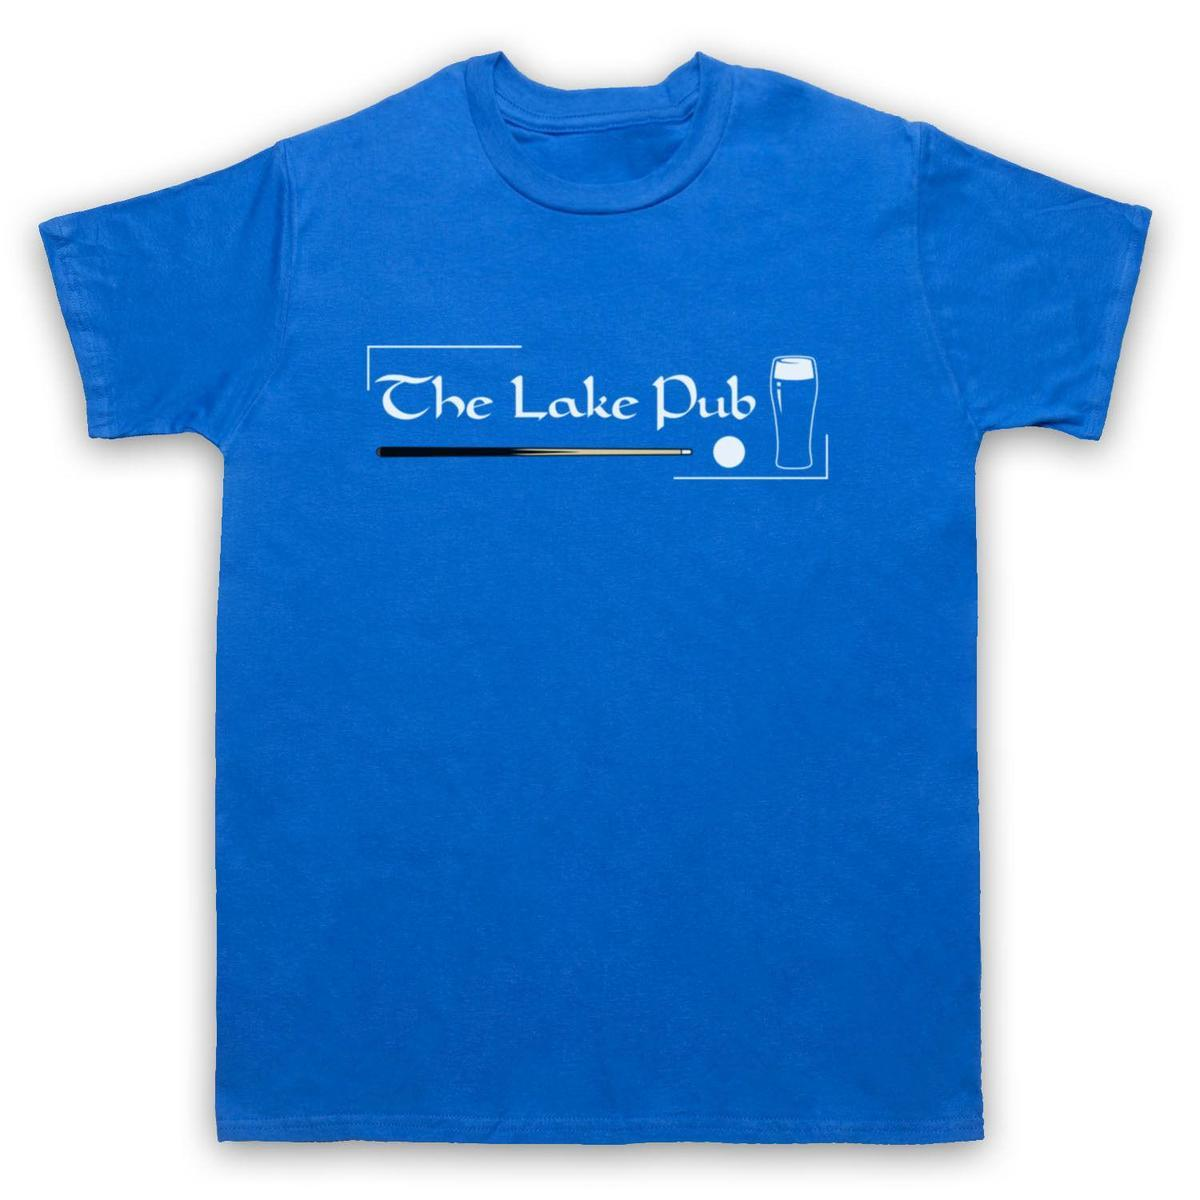 LES REVENANTS UNOFFICIAL LAKE PUB LE T-SHIRT RETOUR ADULTES KIDS TALS COLS